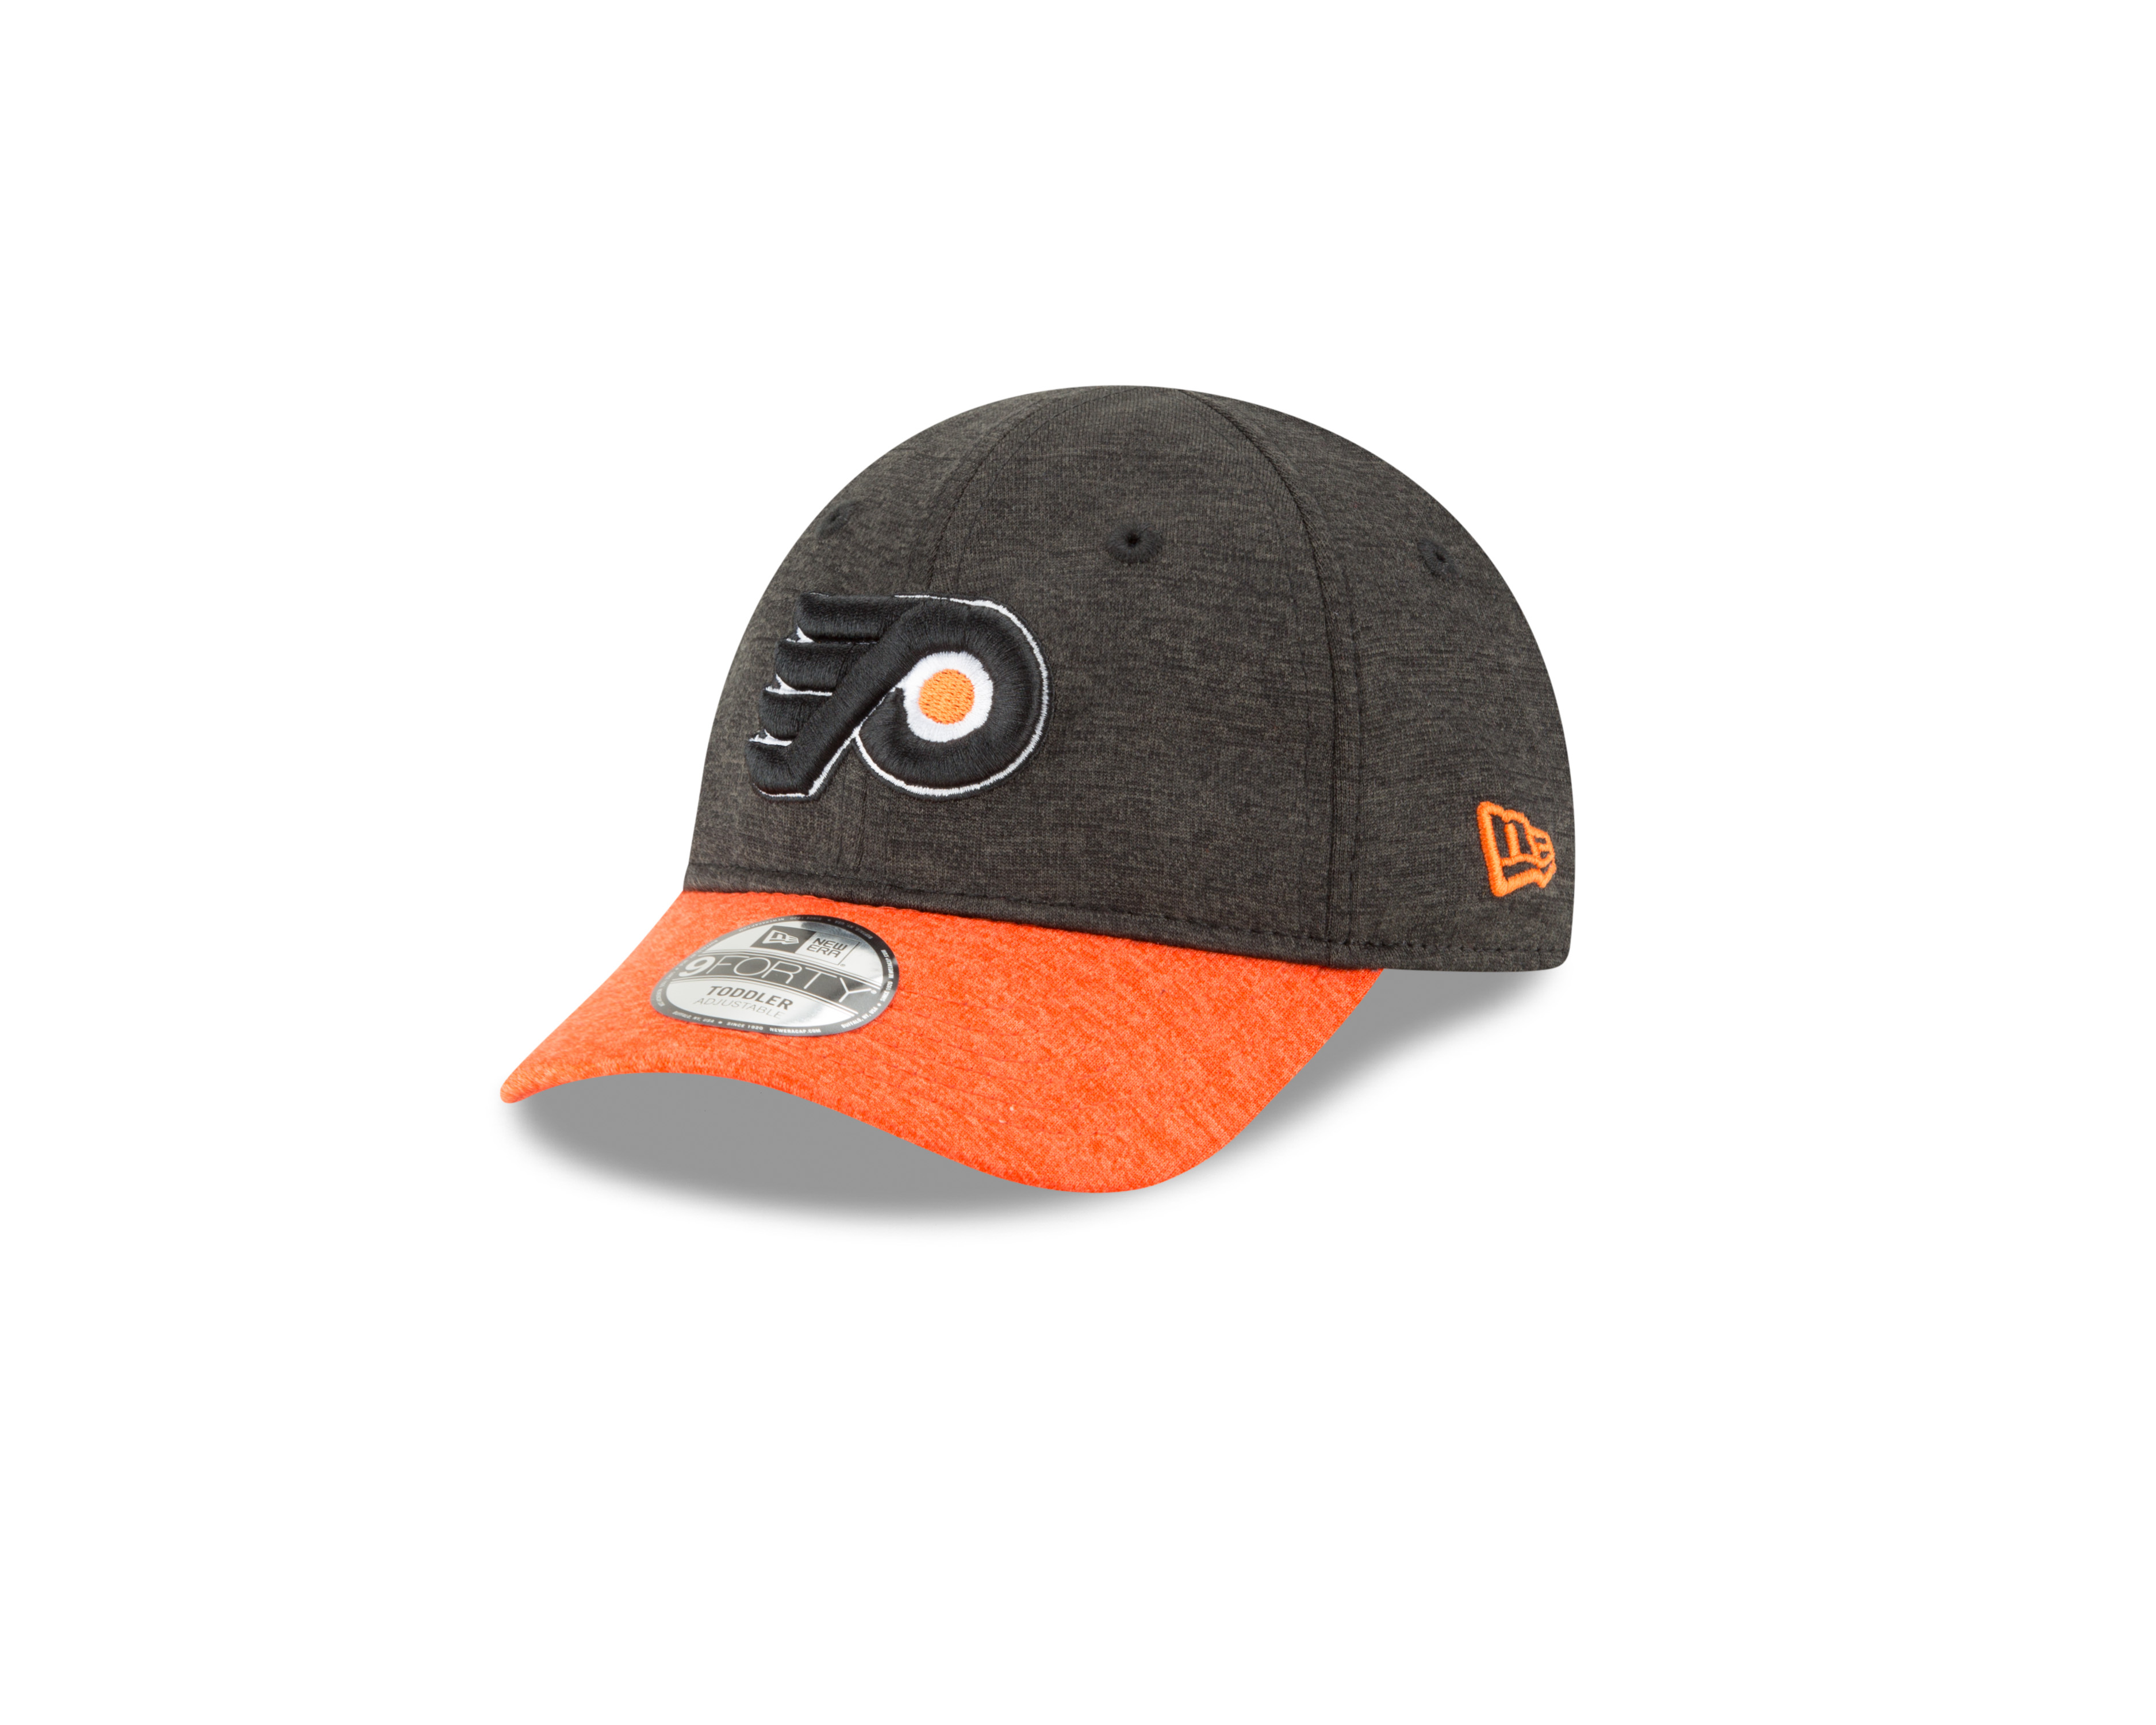 2cc8f5187 Philadelphia Flyers Toddler Shadowed 9Forty Cap by New Era - Wells ...